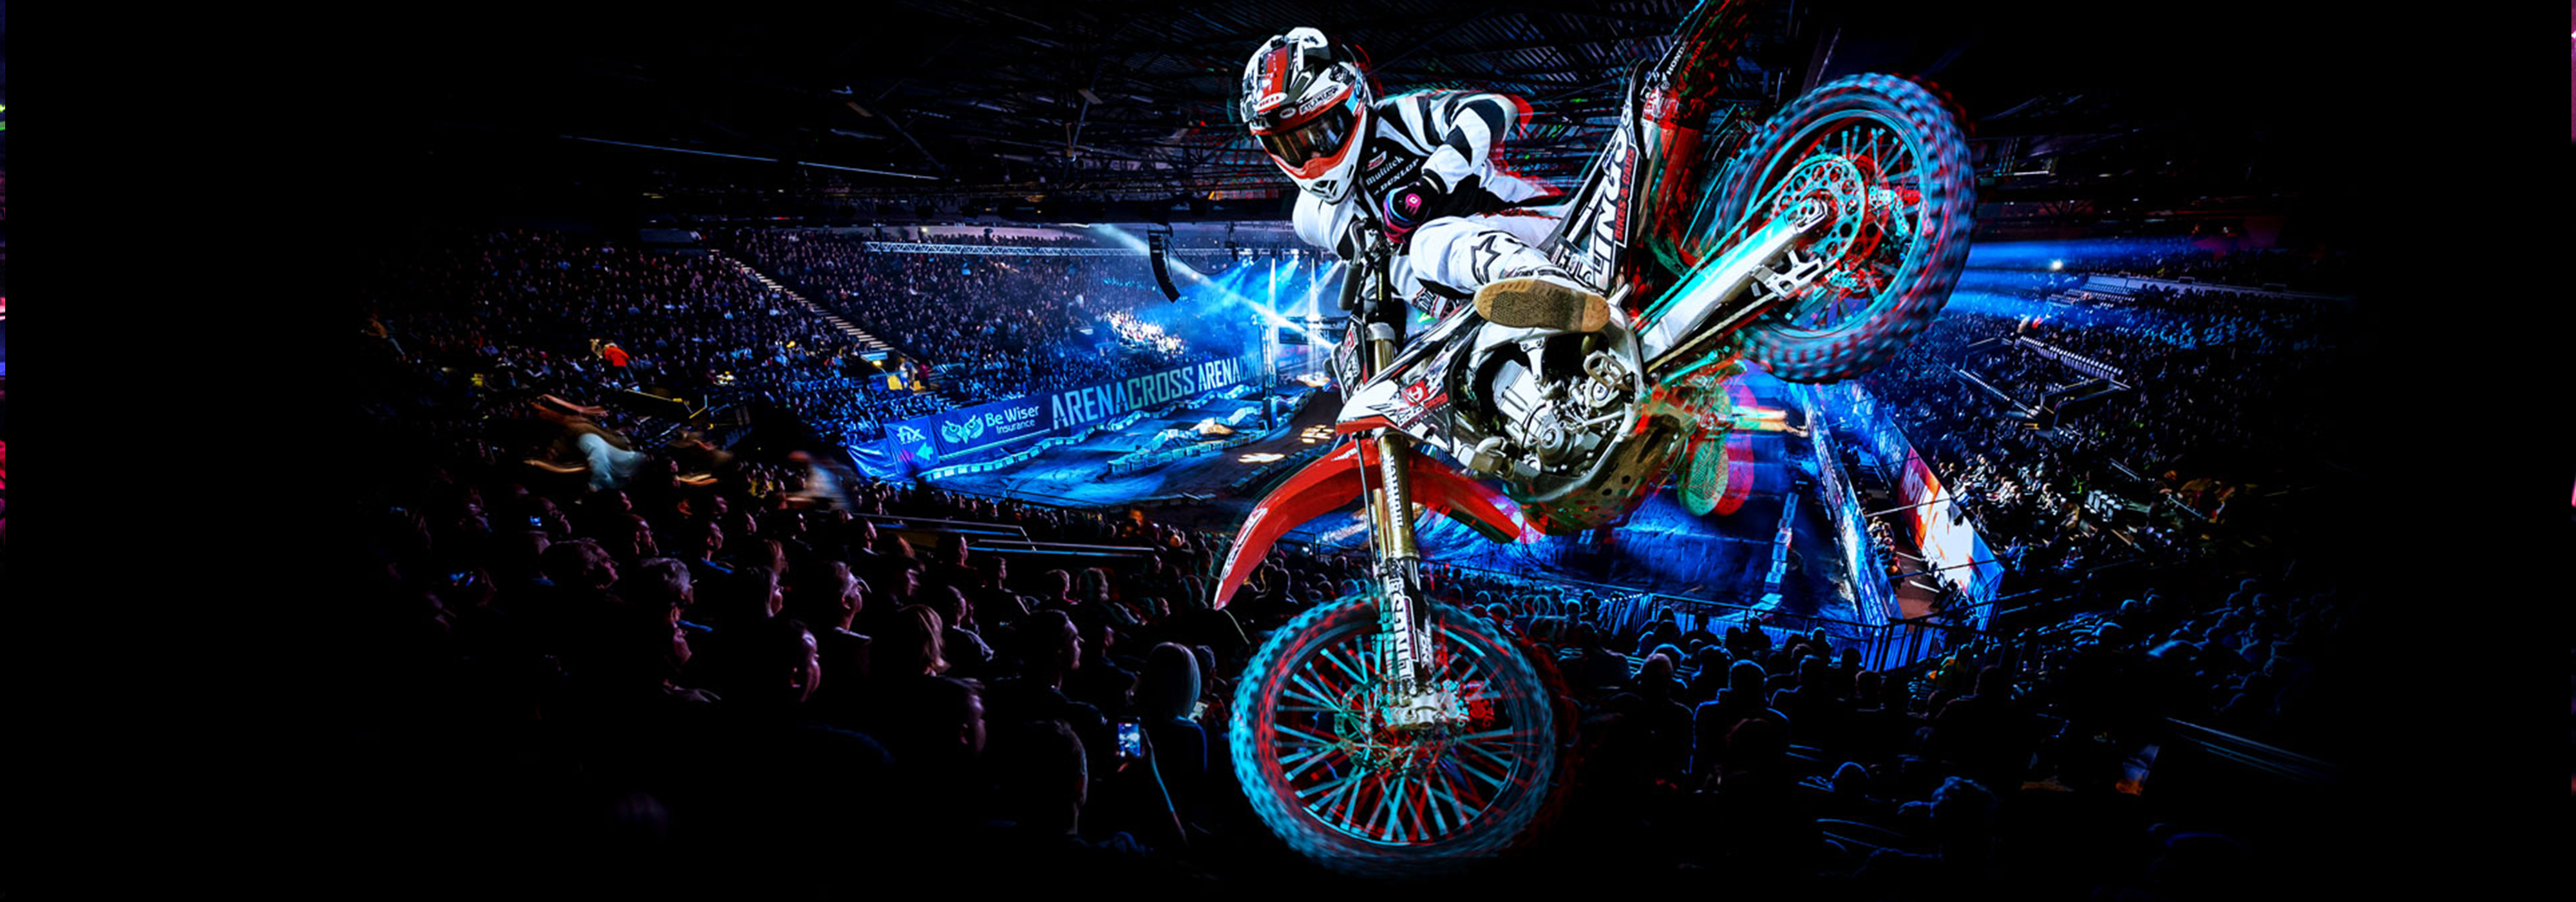 Calendario Ama Motocross 2020.The Dirt Bike Show With A Difference Buy Tickets Now